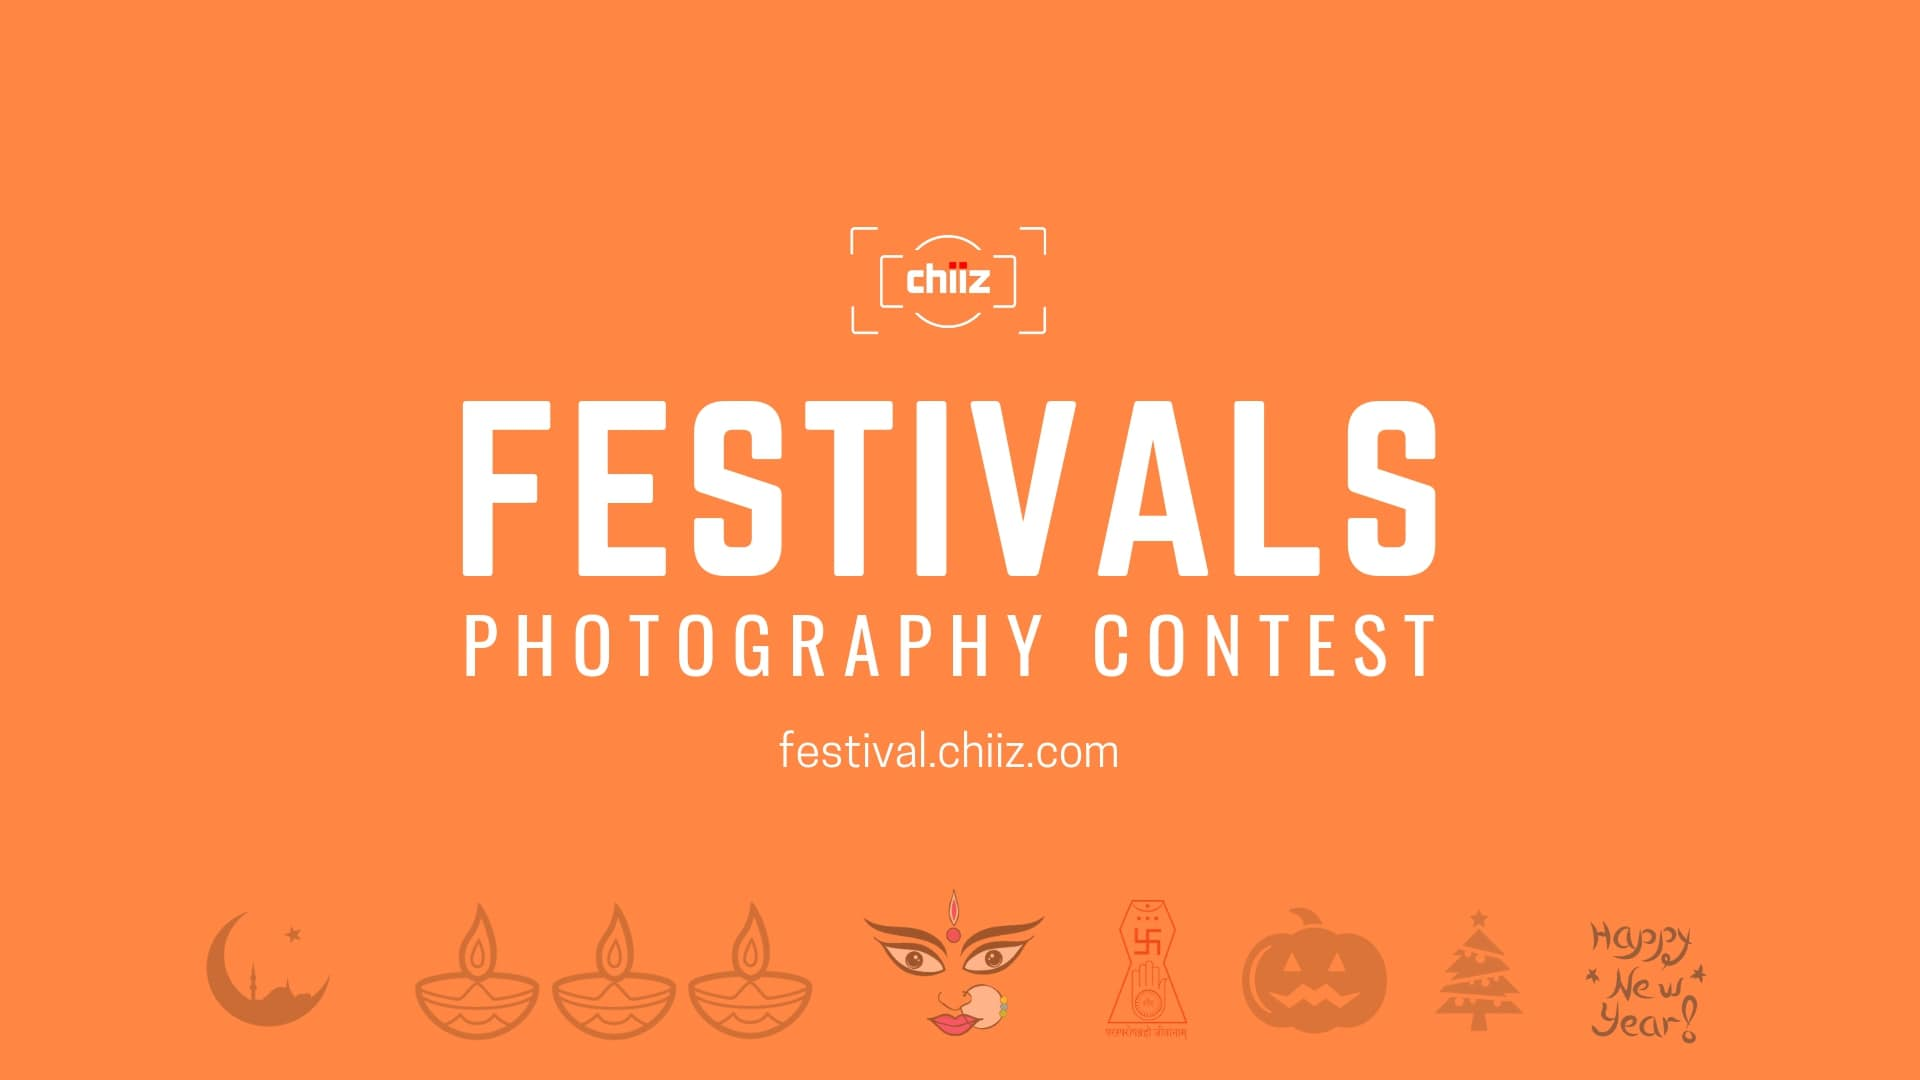 Festival Photography Contest